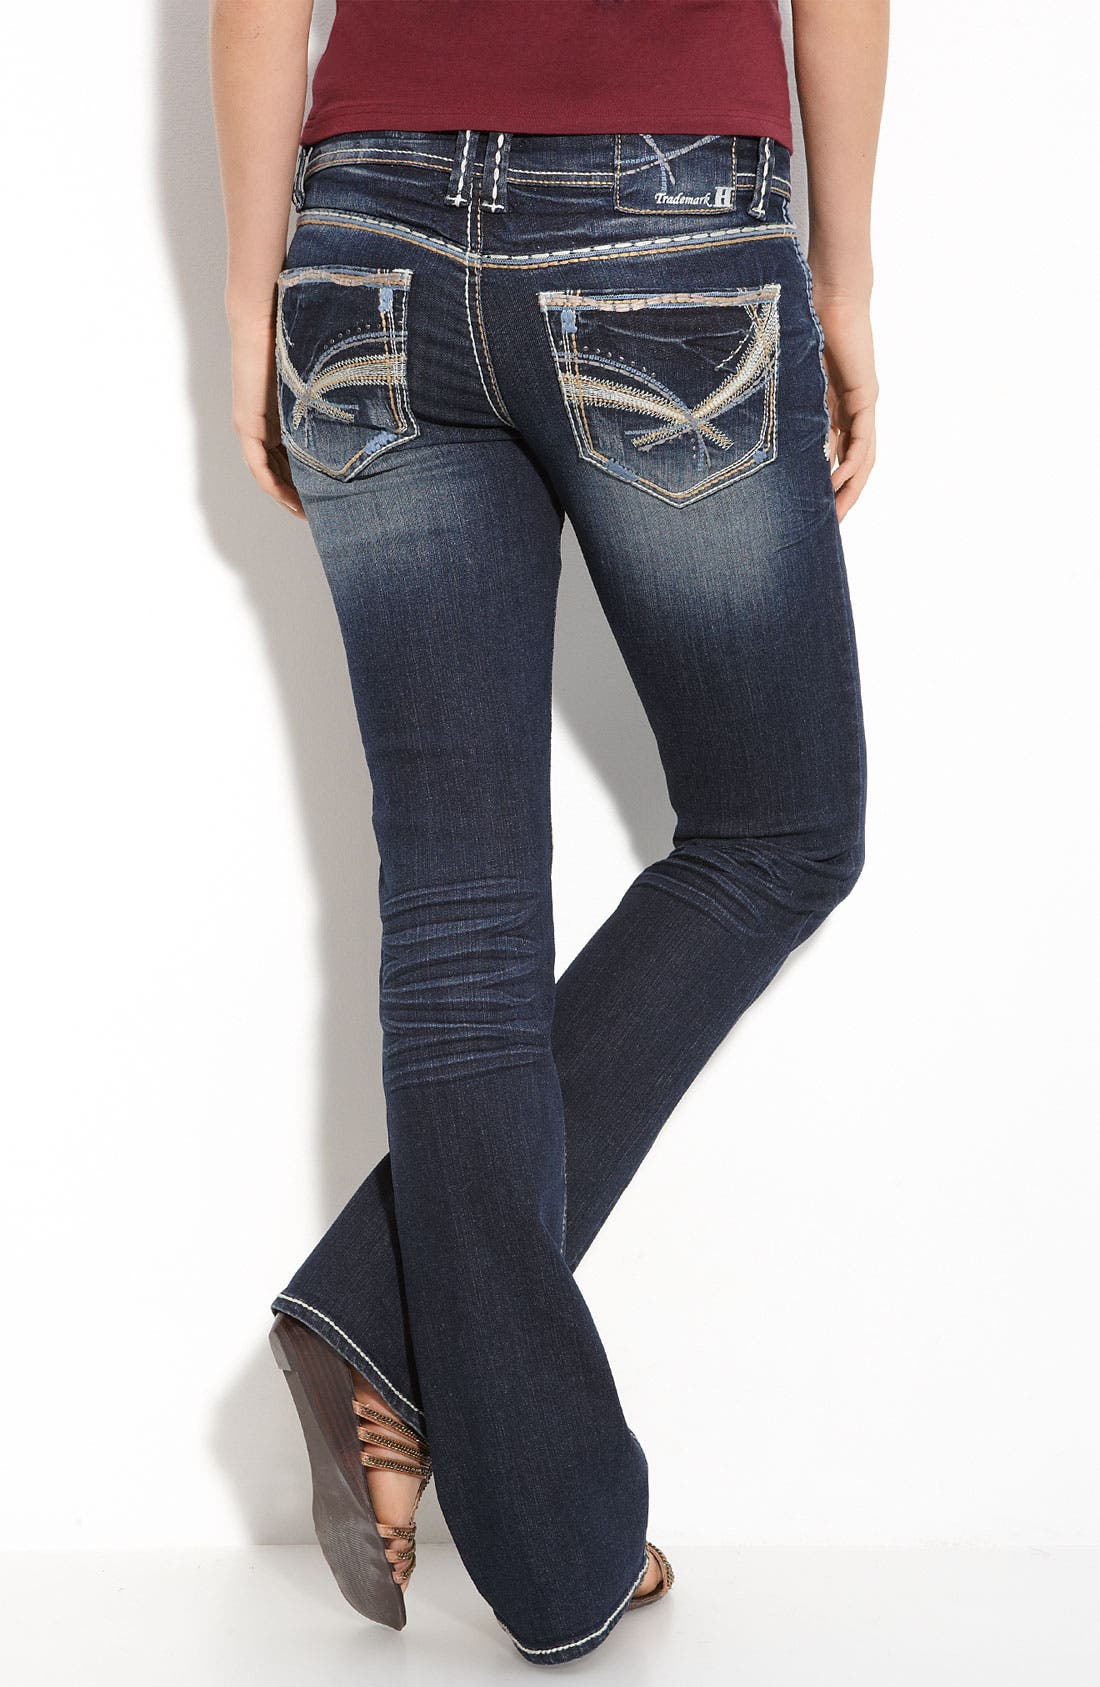 Main Image - Trademark H Slim Bootcut Jeans (Blue Wash) (Juniors)